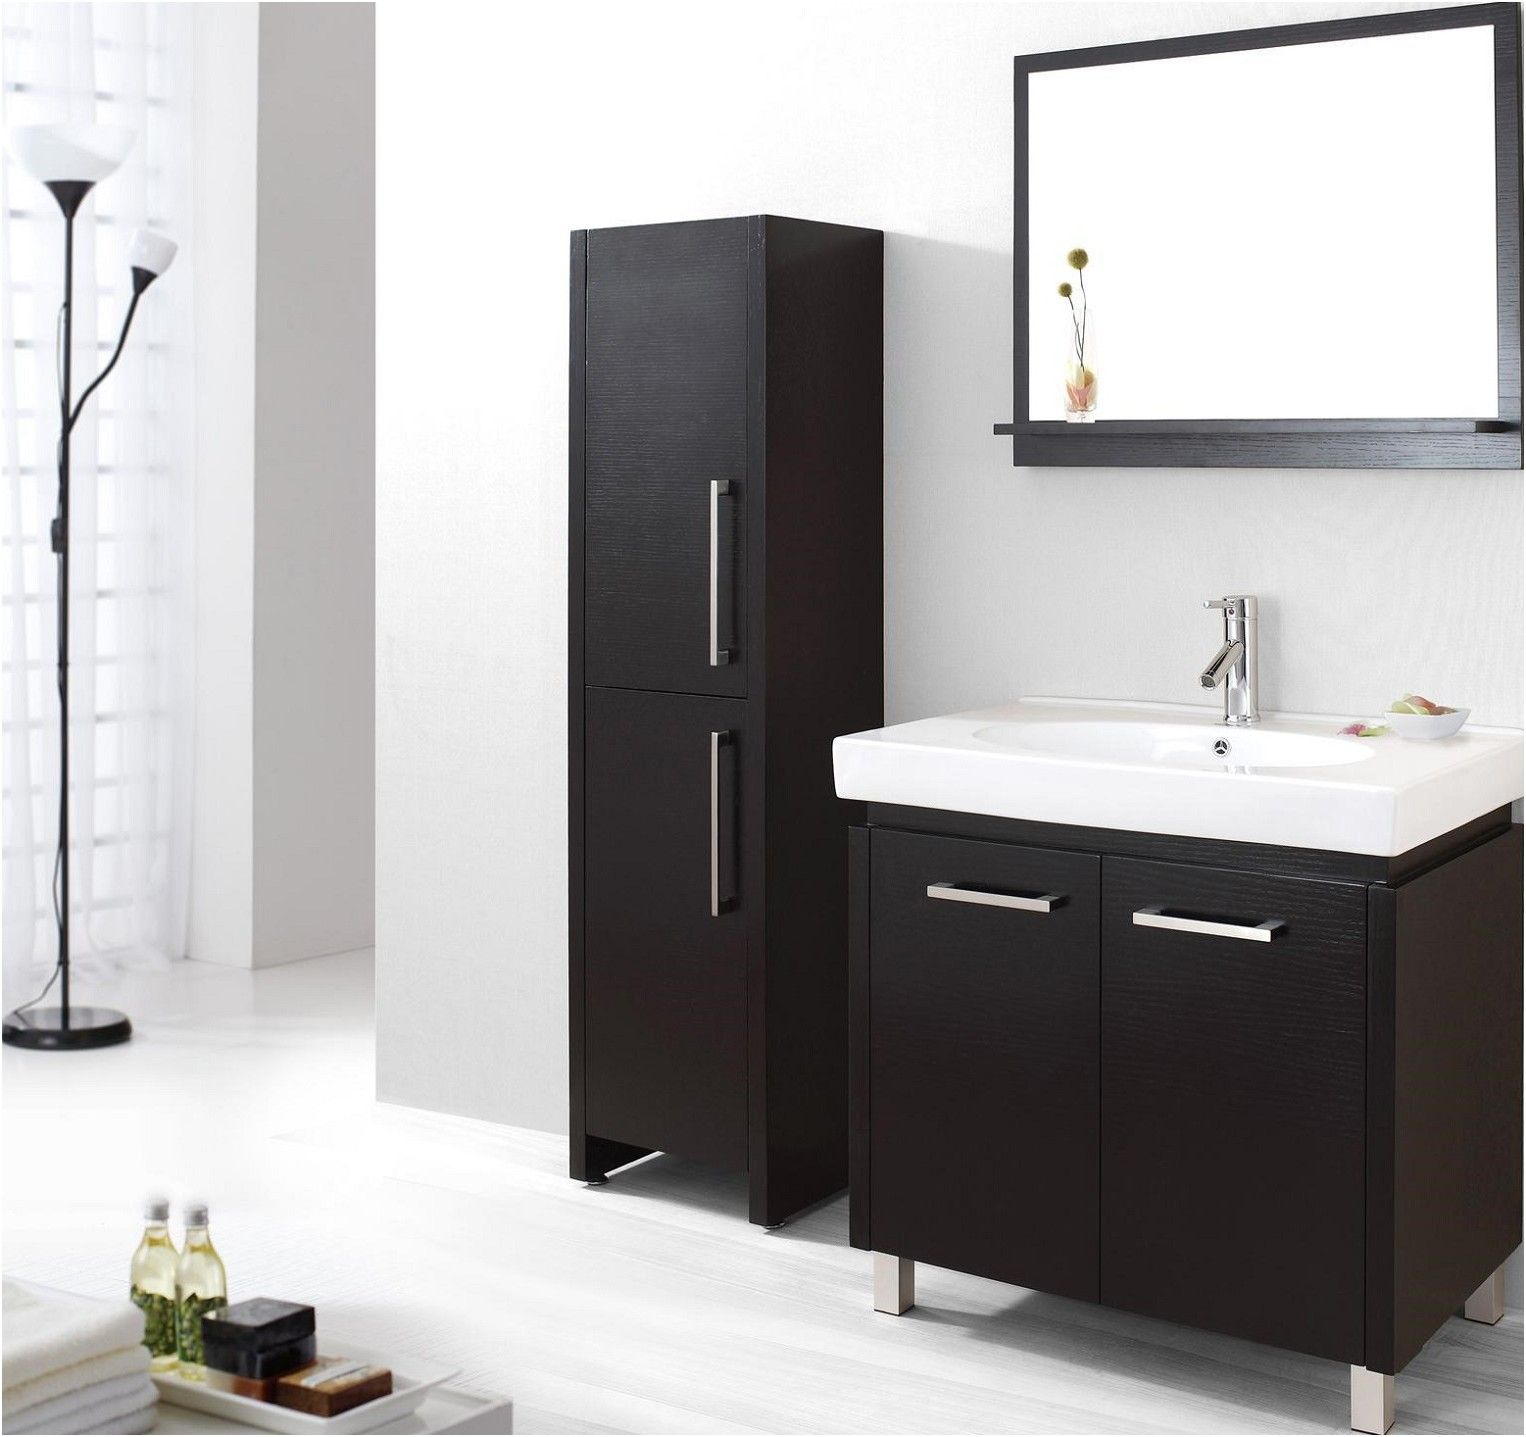 bathrooms black bathroom cabinets and storage units black from Black ...